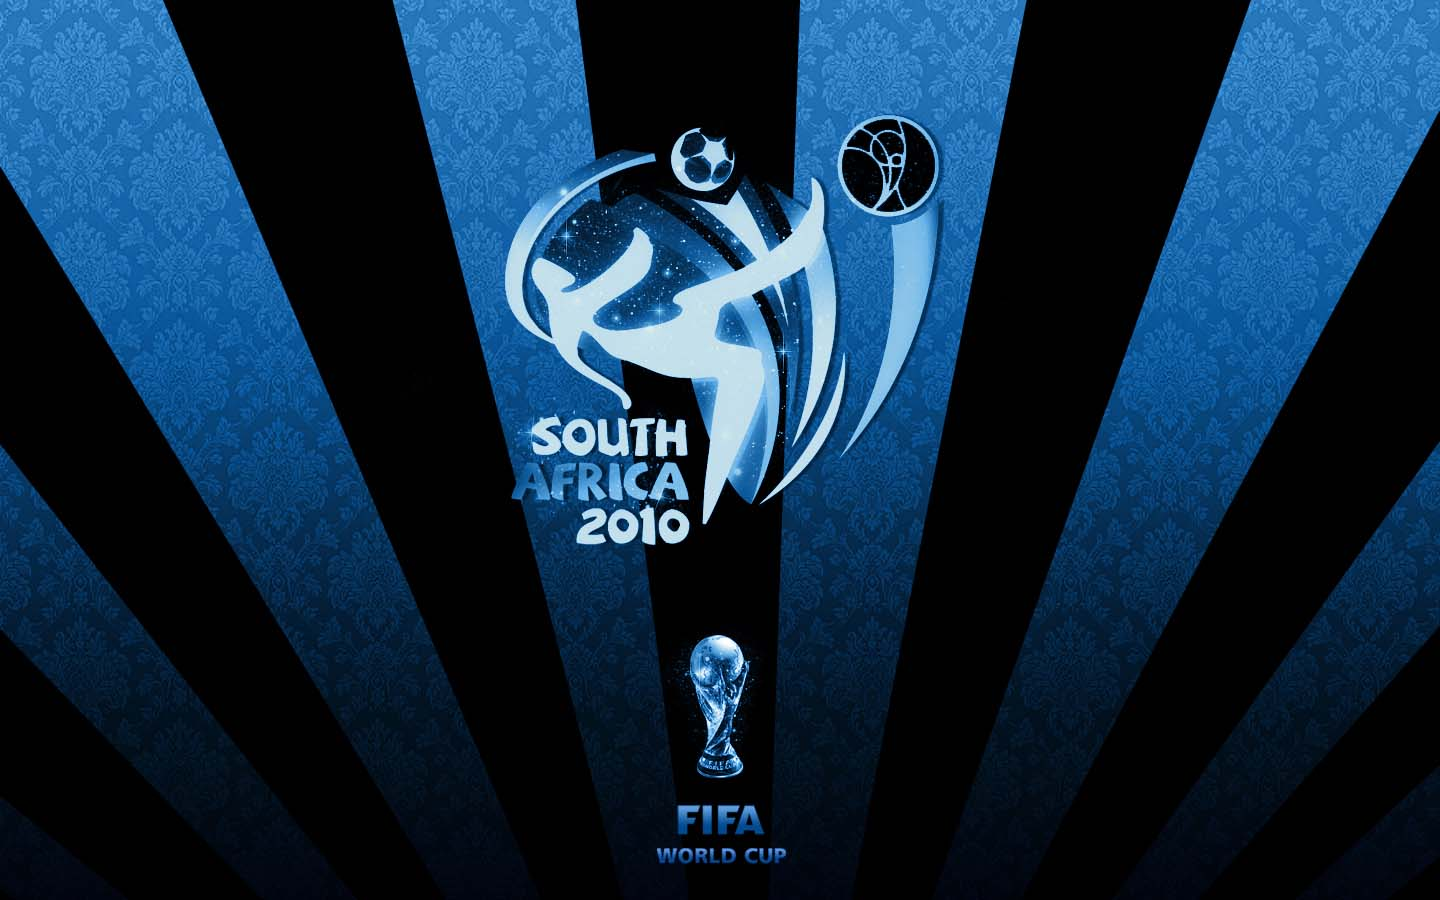 world cup 2010 wallpaper click on the wallpaper to open it in new ...